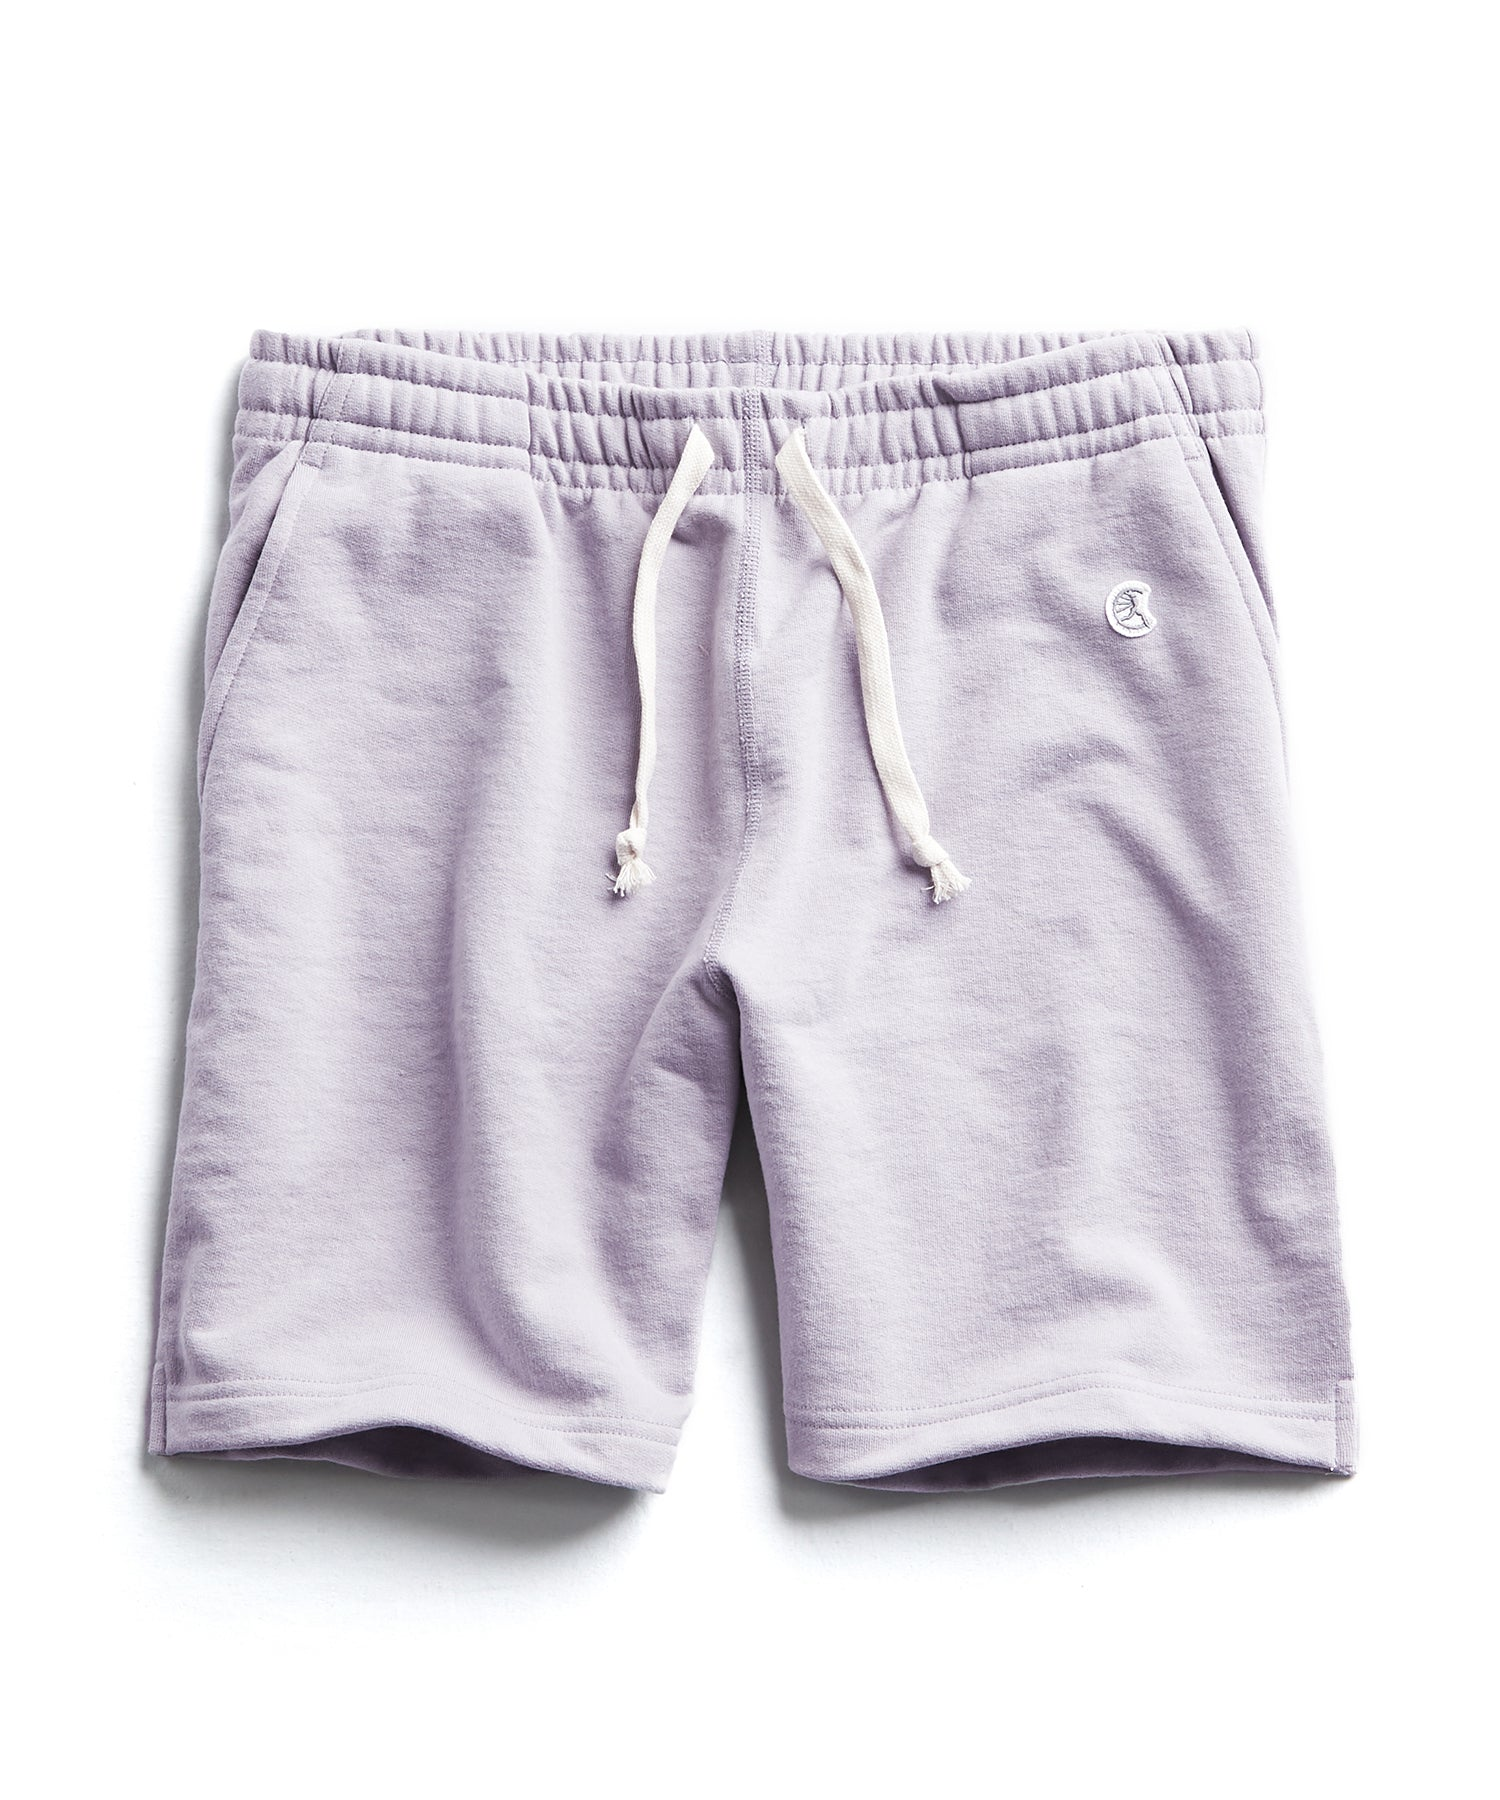 Terry Warm Up Short in Wisteria